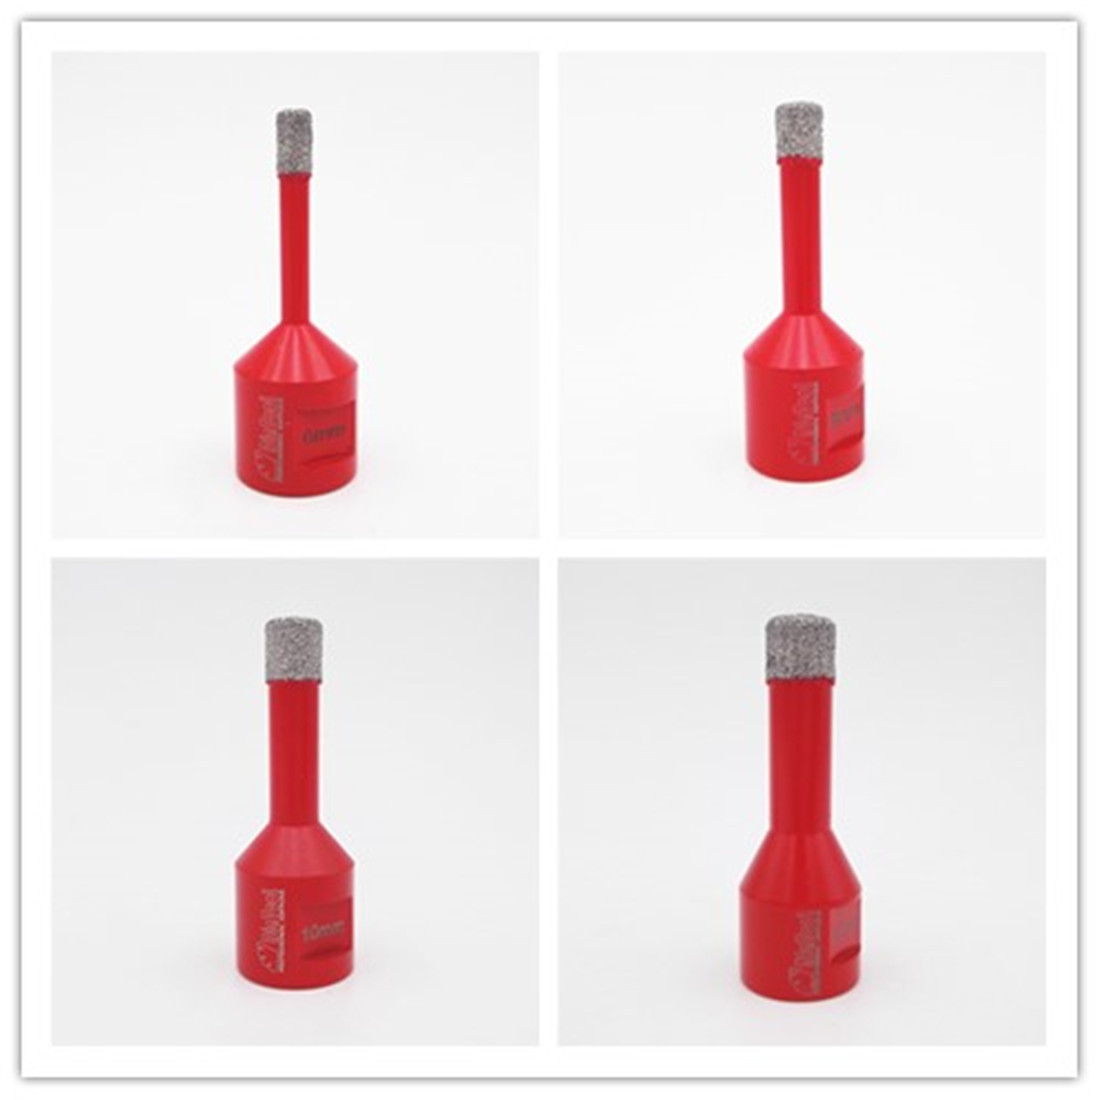 DIATOOL 1pc Vacuum Brazed Diamond Drilling Core Bits 10MM Diamond Height Hole Saw M14 Connection Drill Bits diatool vacuum brazed diamond drilling core bits with 15mm diamond height 20 25 35 45 55 75mm hole saw drill bits